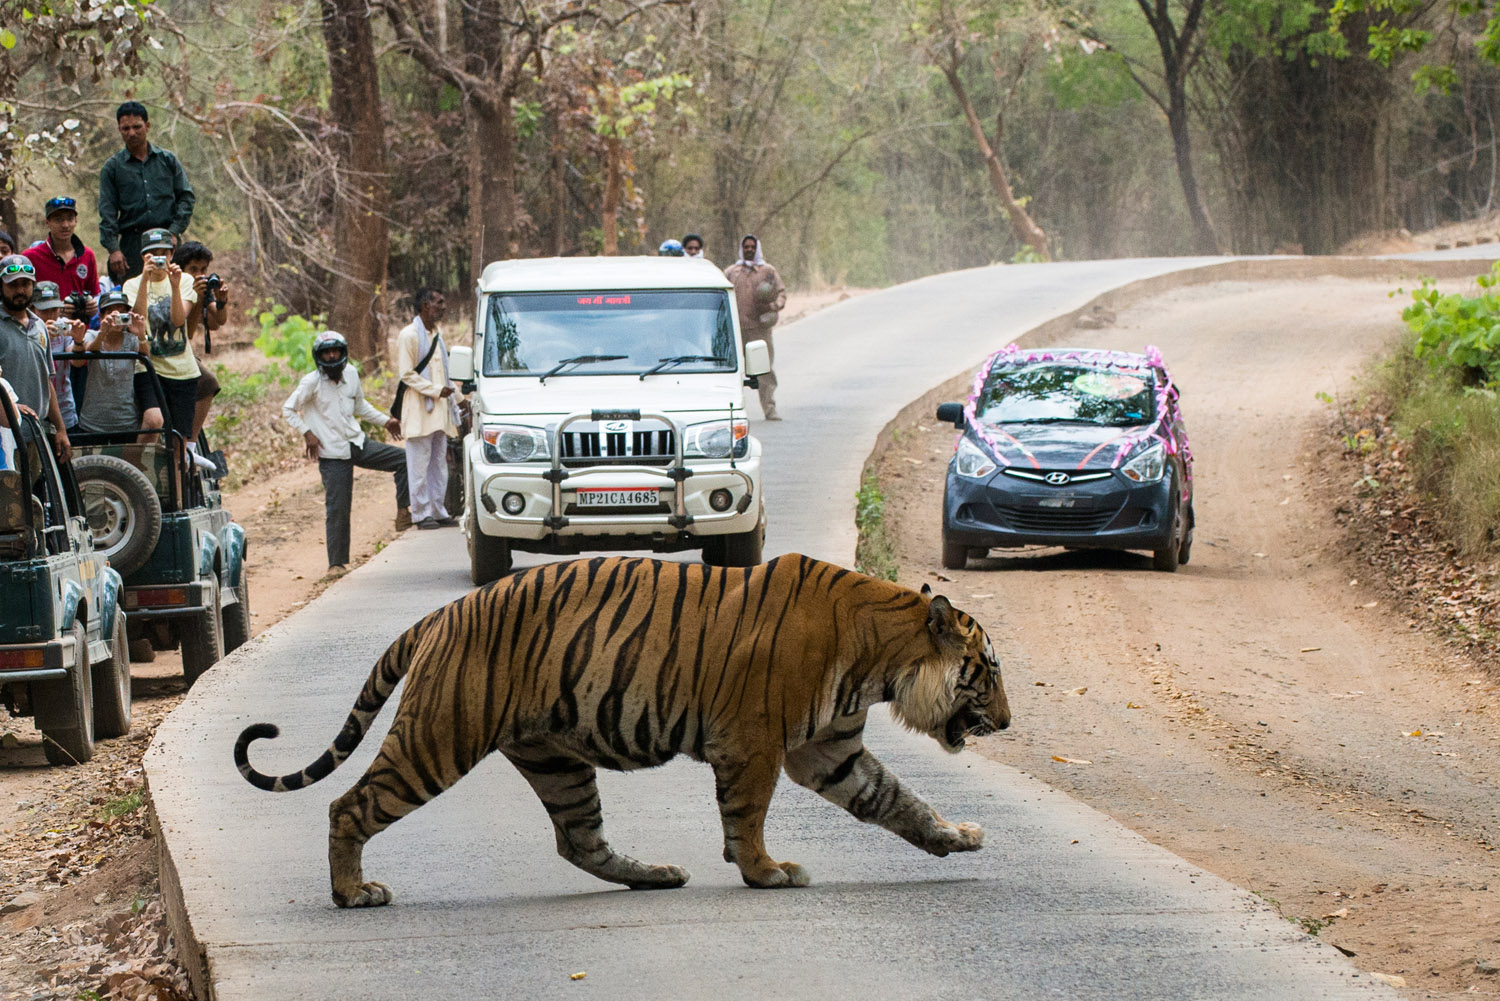 Bengal tiger crossing main road through tiger reserve, Bandhavgarh National Park, Madhya Pradesh, India